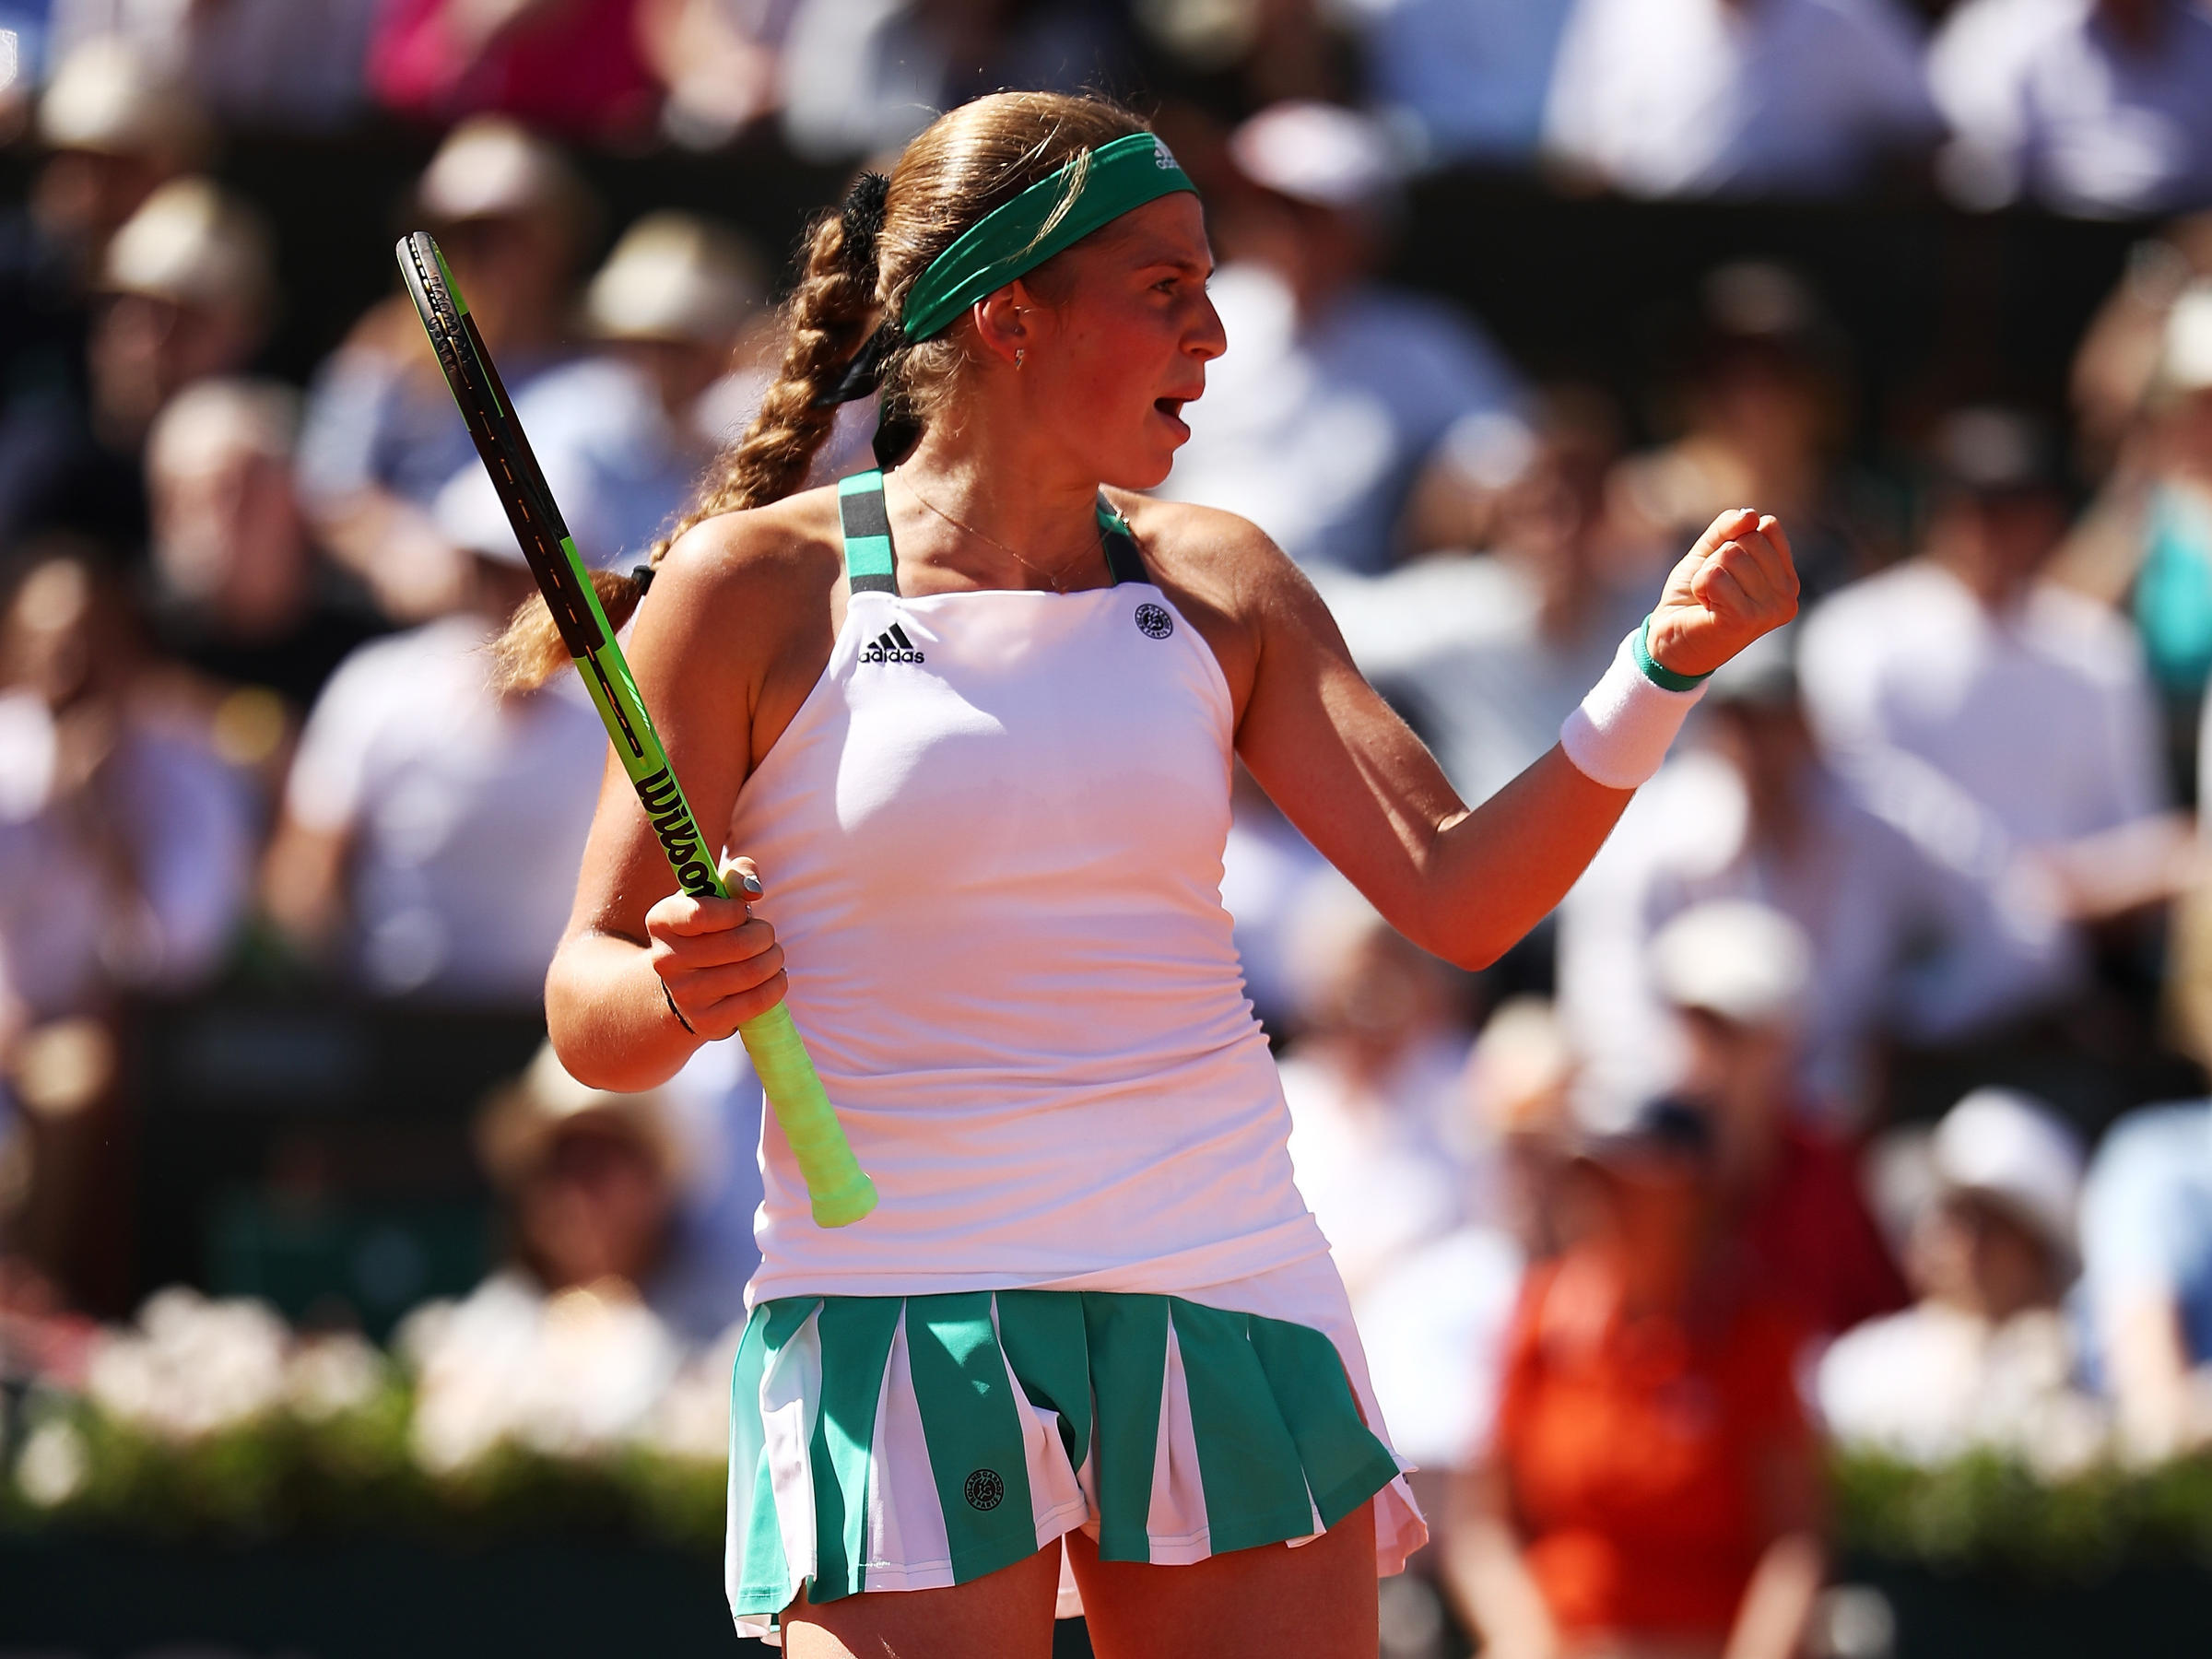 French Open takeaways: Ostapenko's fearlessness ruled the day